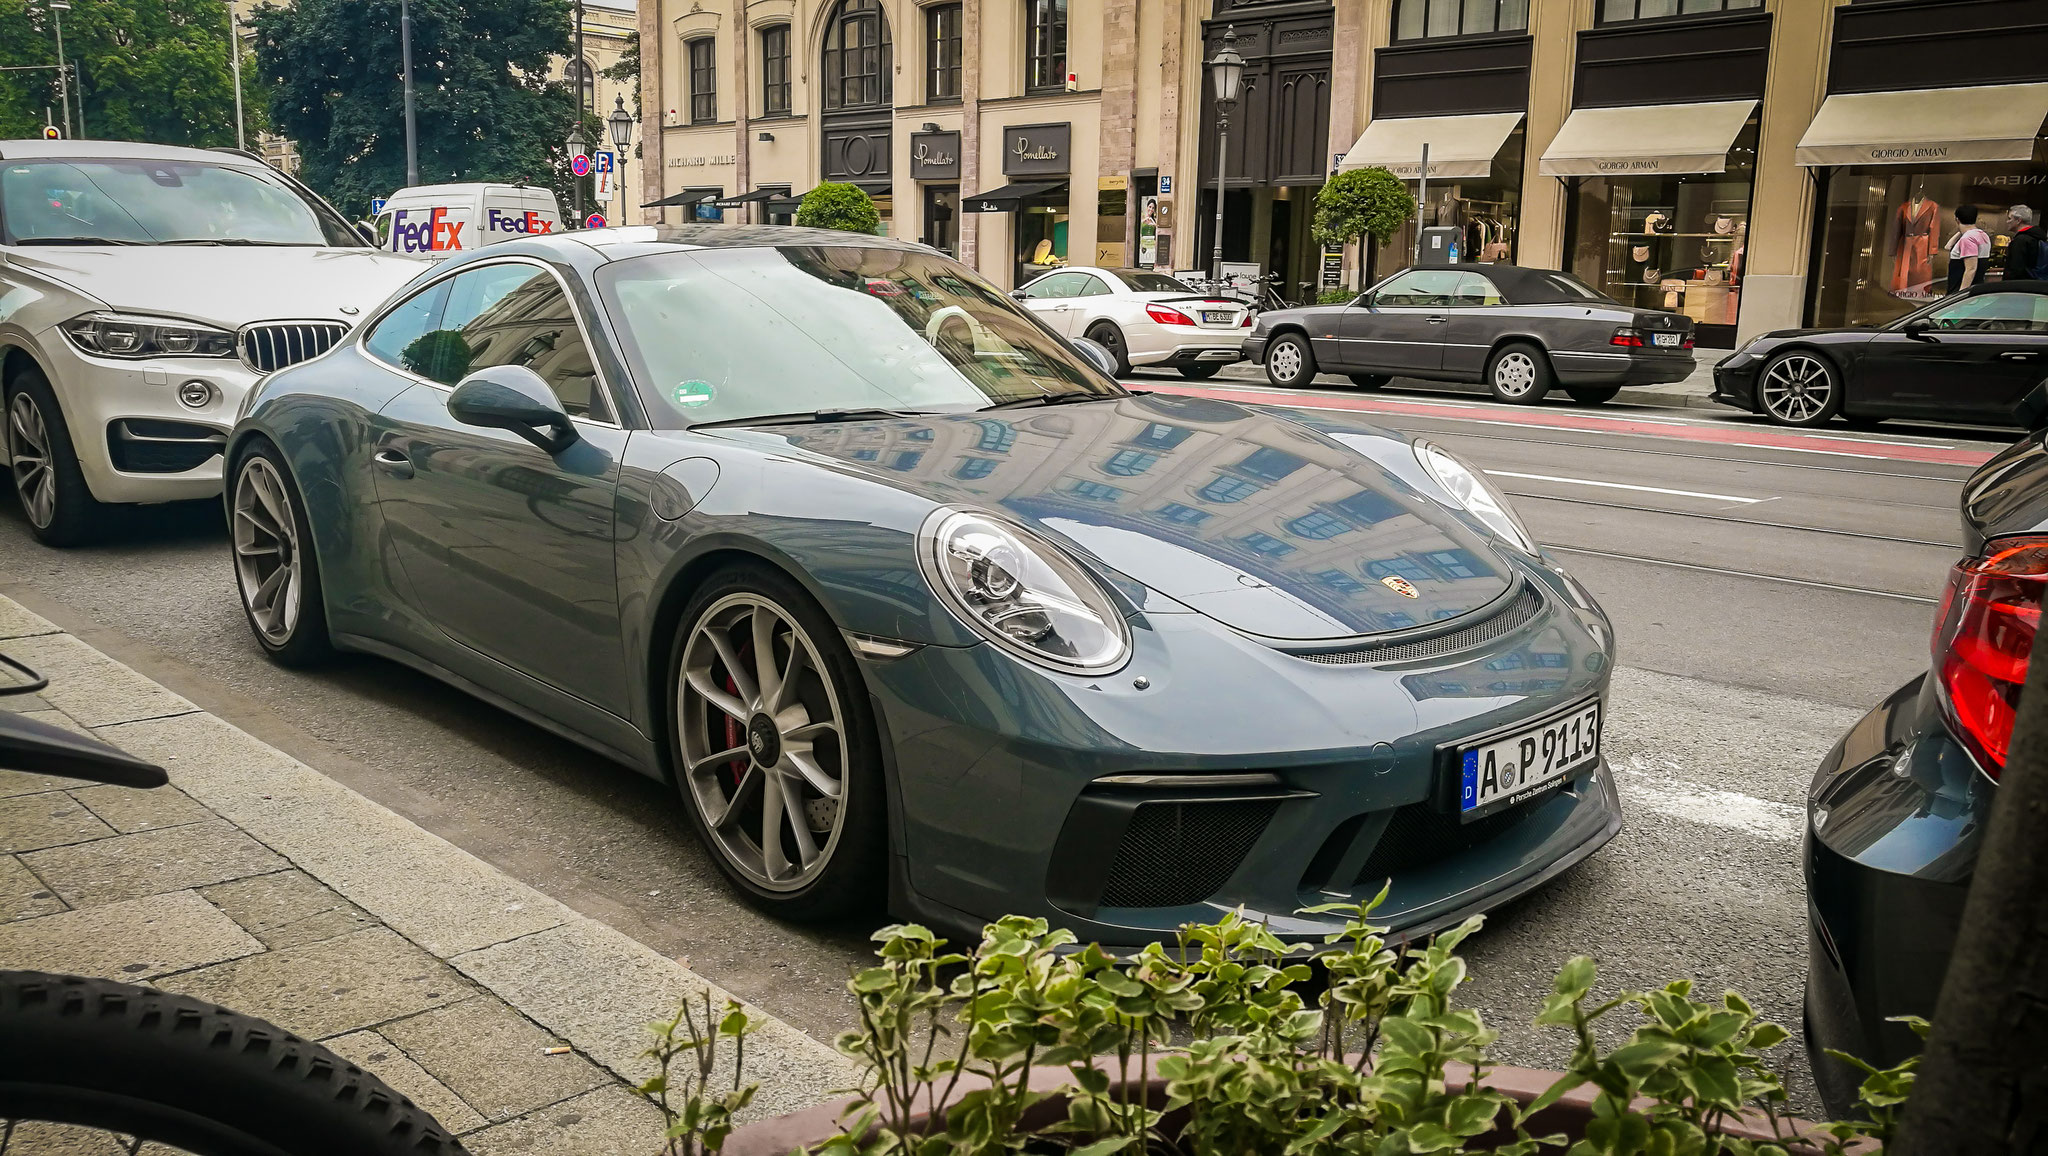 Porsche 991 GT3 Touring Package - A-P-9113